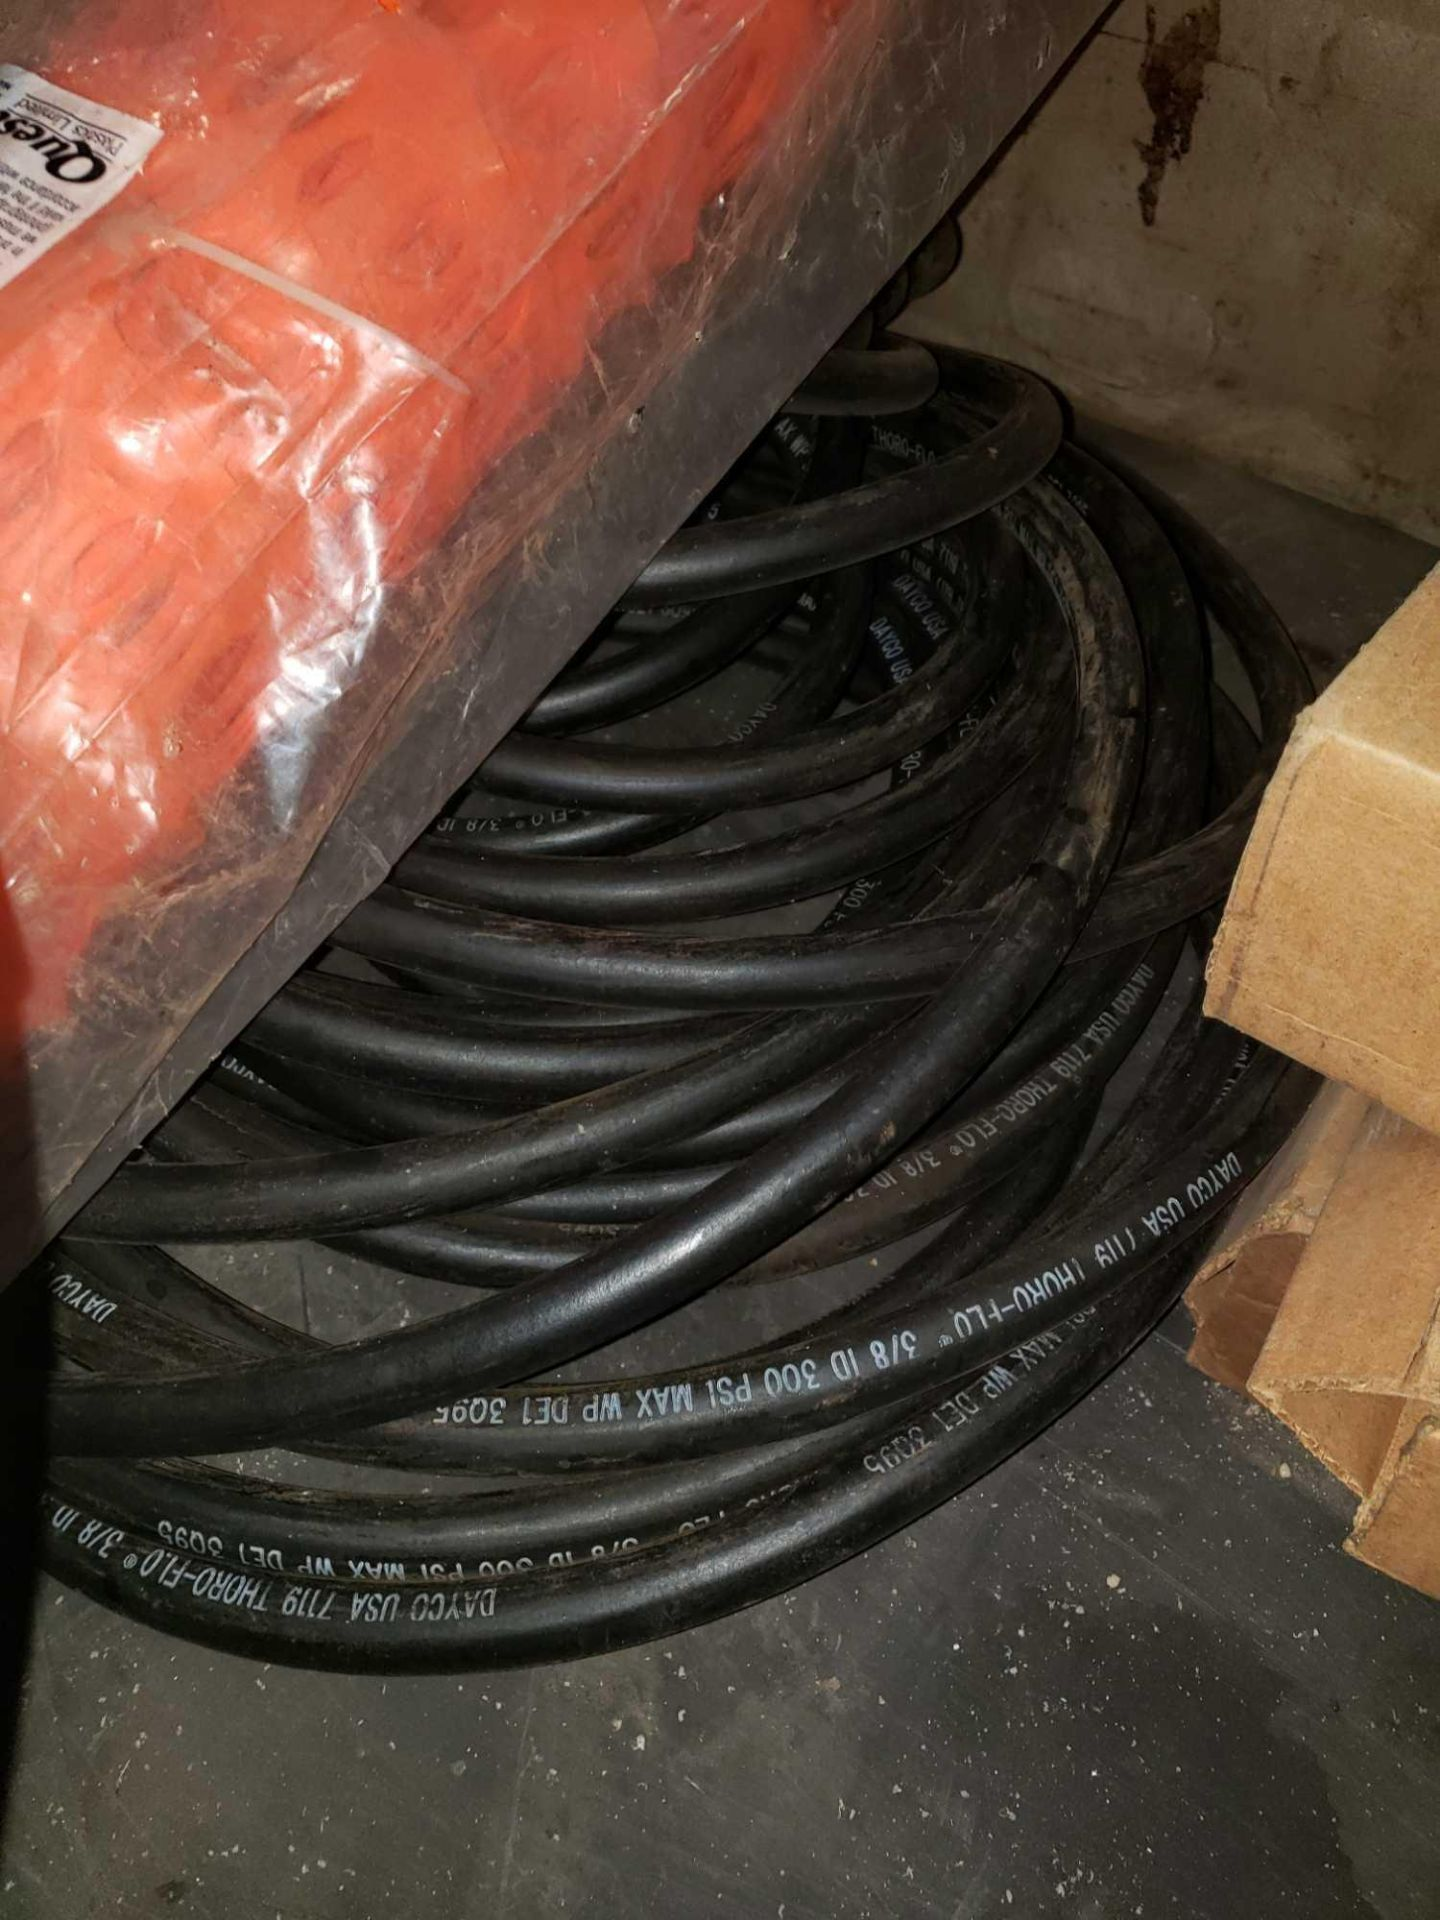 Lot 9 - Assorted lot including snow fence, tape, and assorted hoses